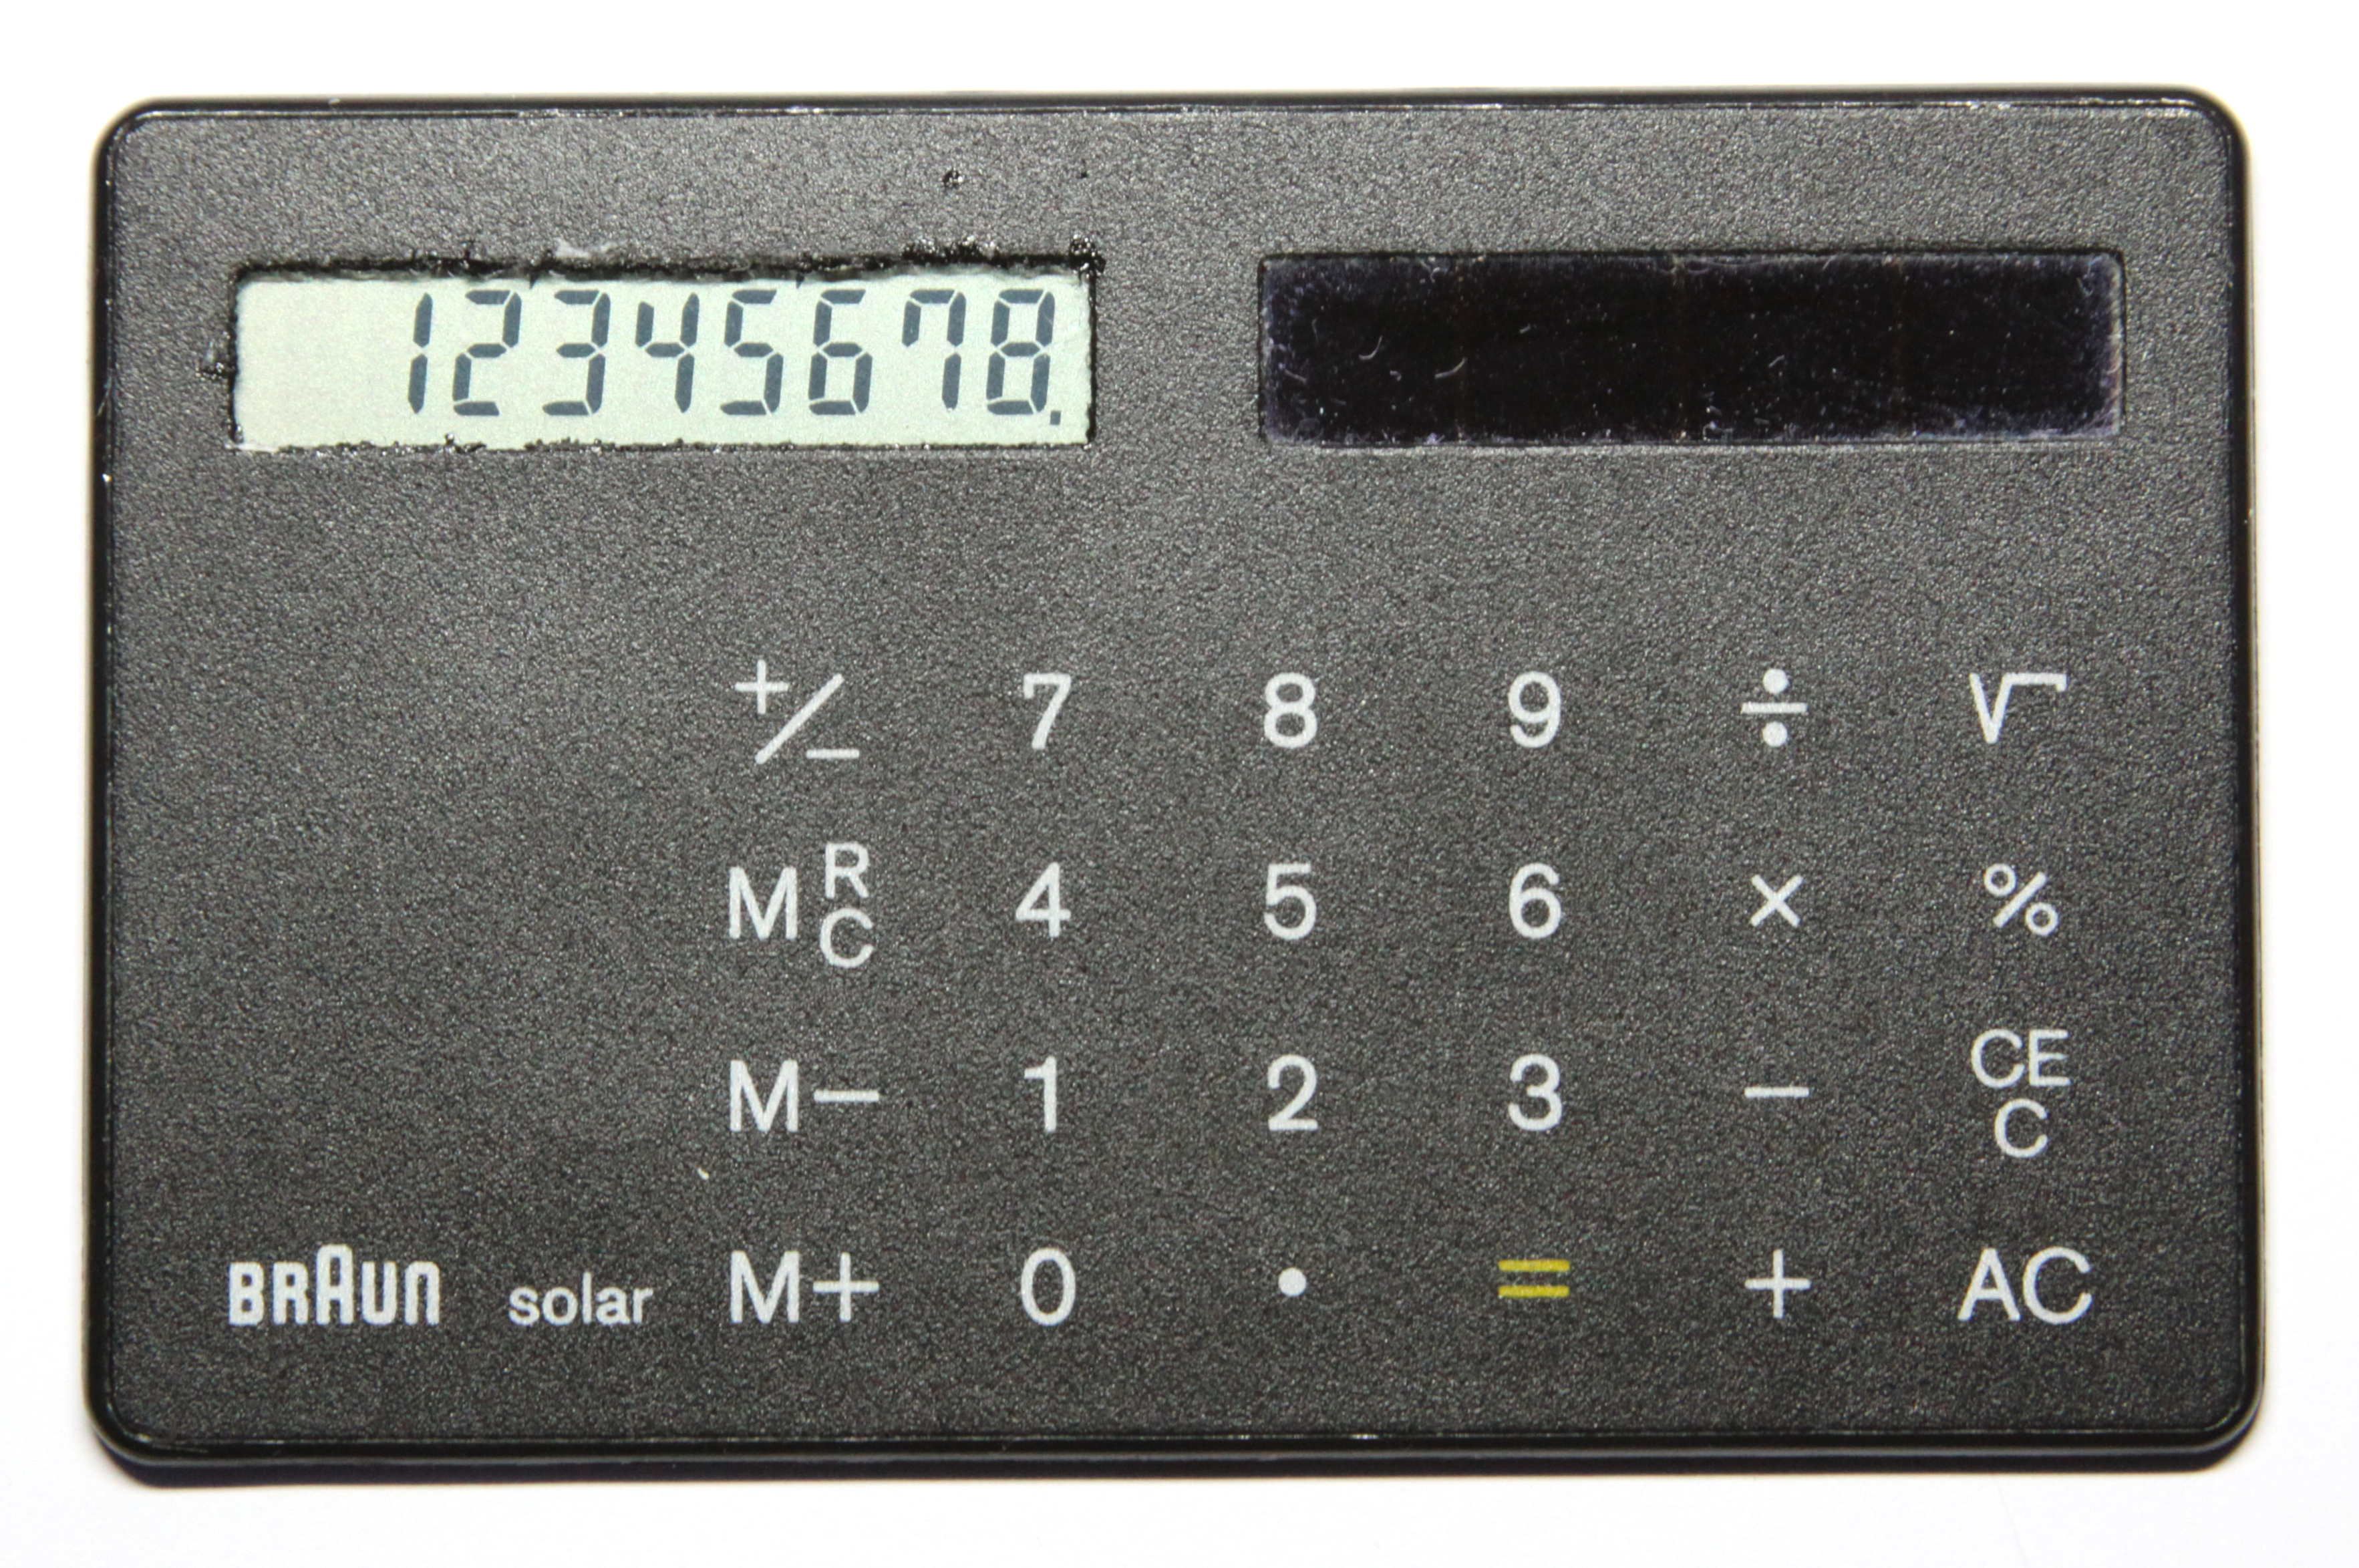 Calculator Wikipedia Scientificcalculatorcircuitboardmadeinchinajpg Credit Card Sized Solar Powered By Braun 1987